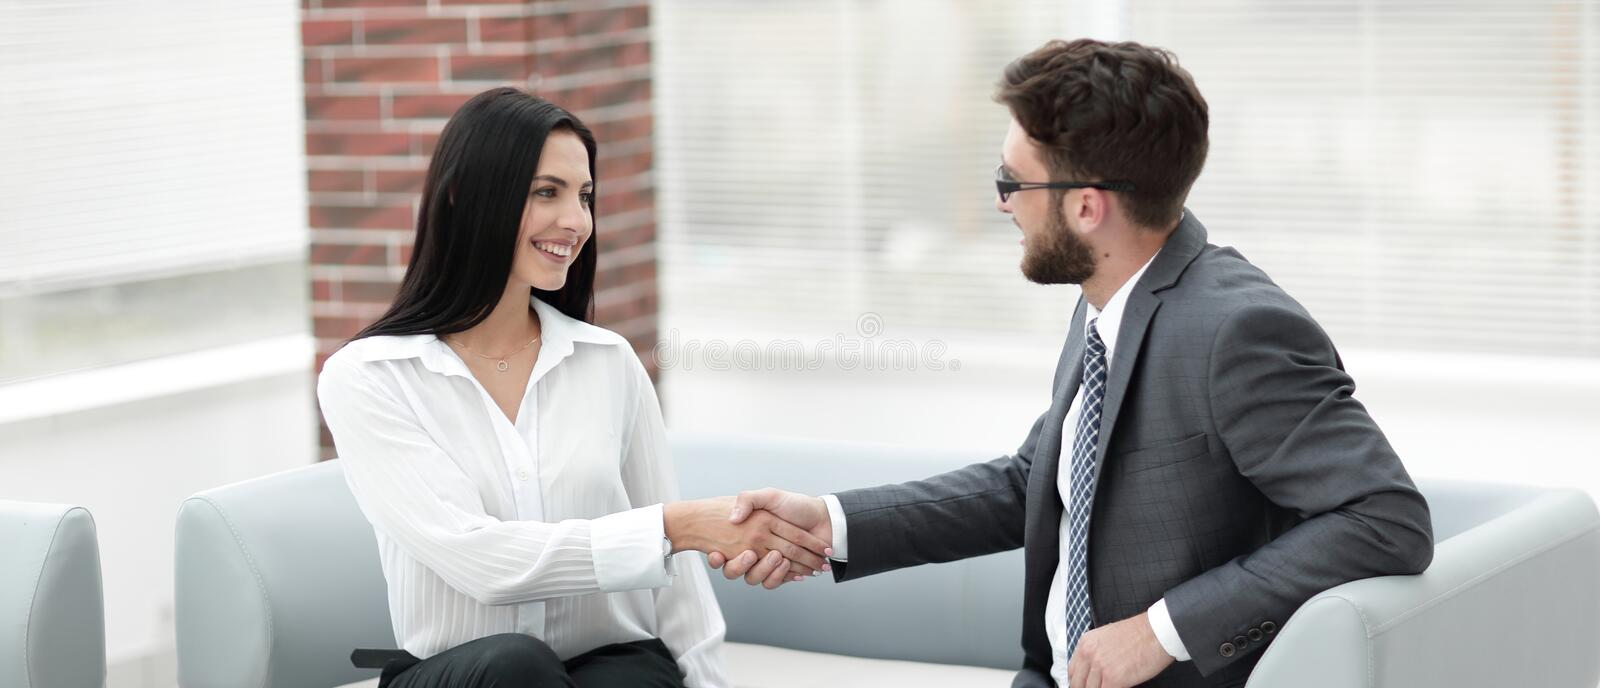 Handshake of manager and client sitting in the office lobby. royalty free stock photos